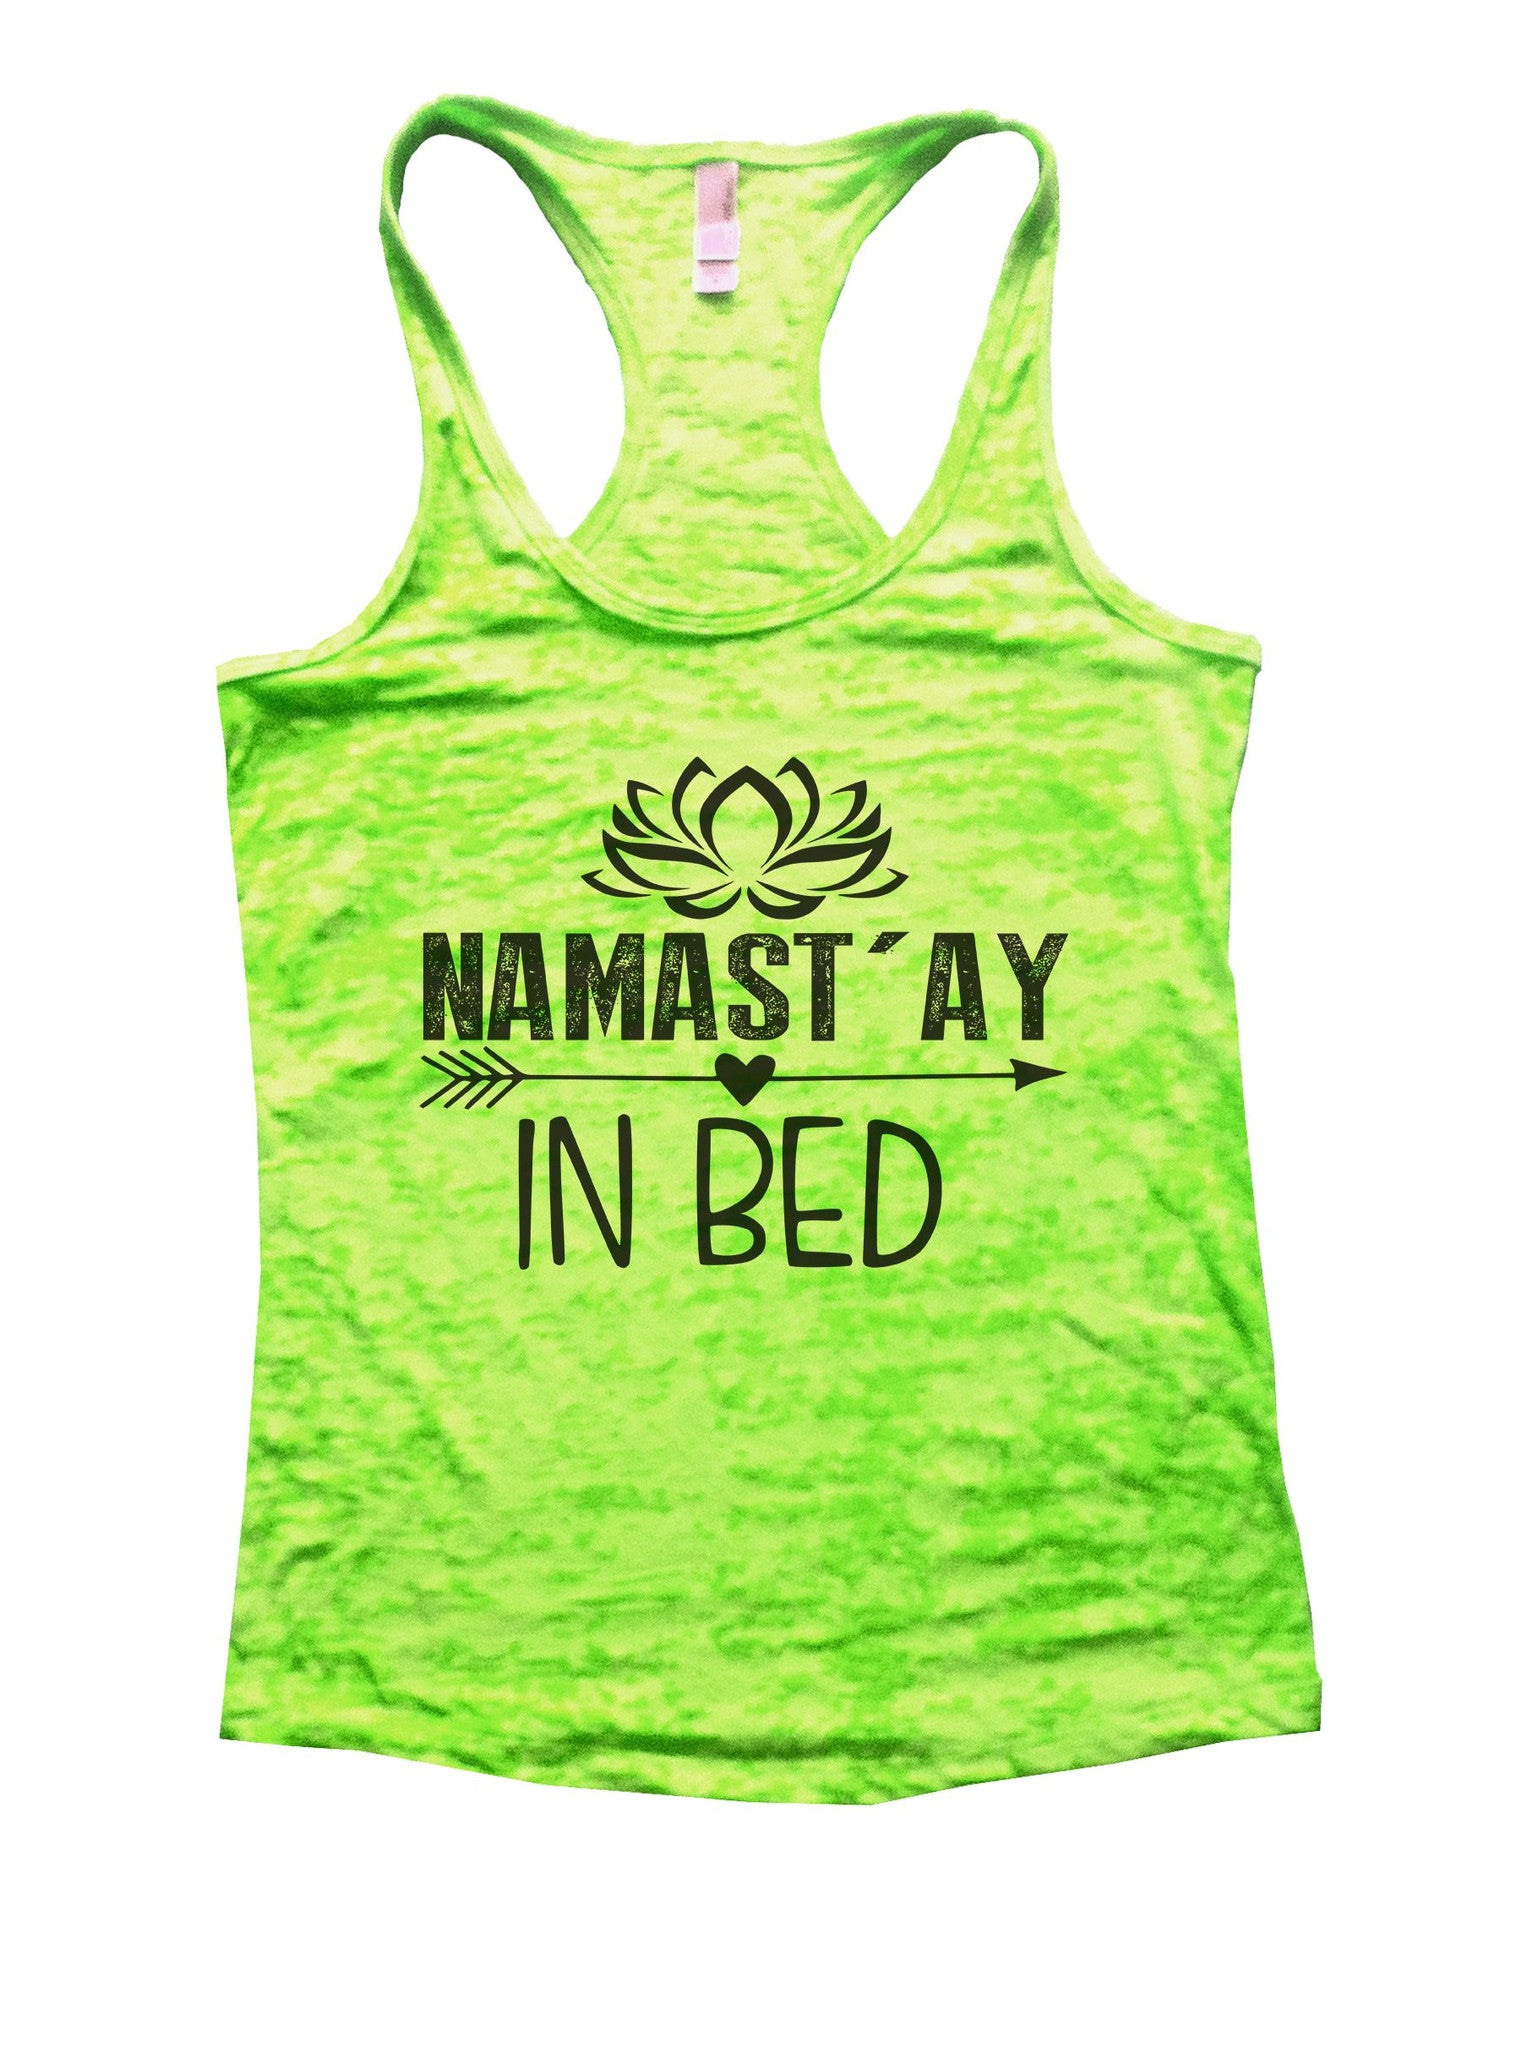 Namastay In Bed Burnout Tank Top By BurnoutTankTops.com - 915 - Funny Shirts Tank Tops Burnouts and Triblends  - 3